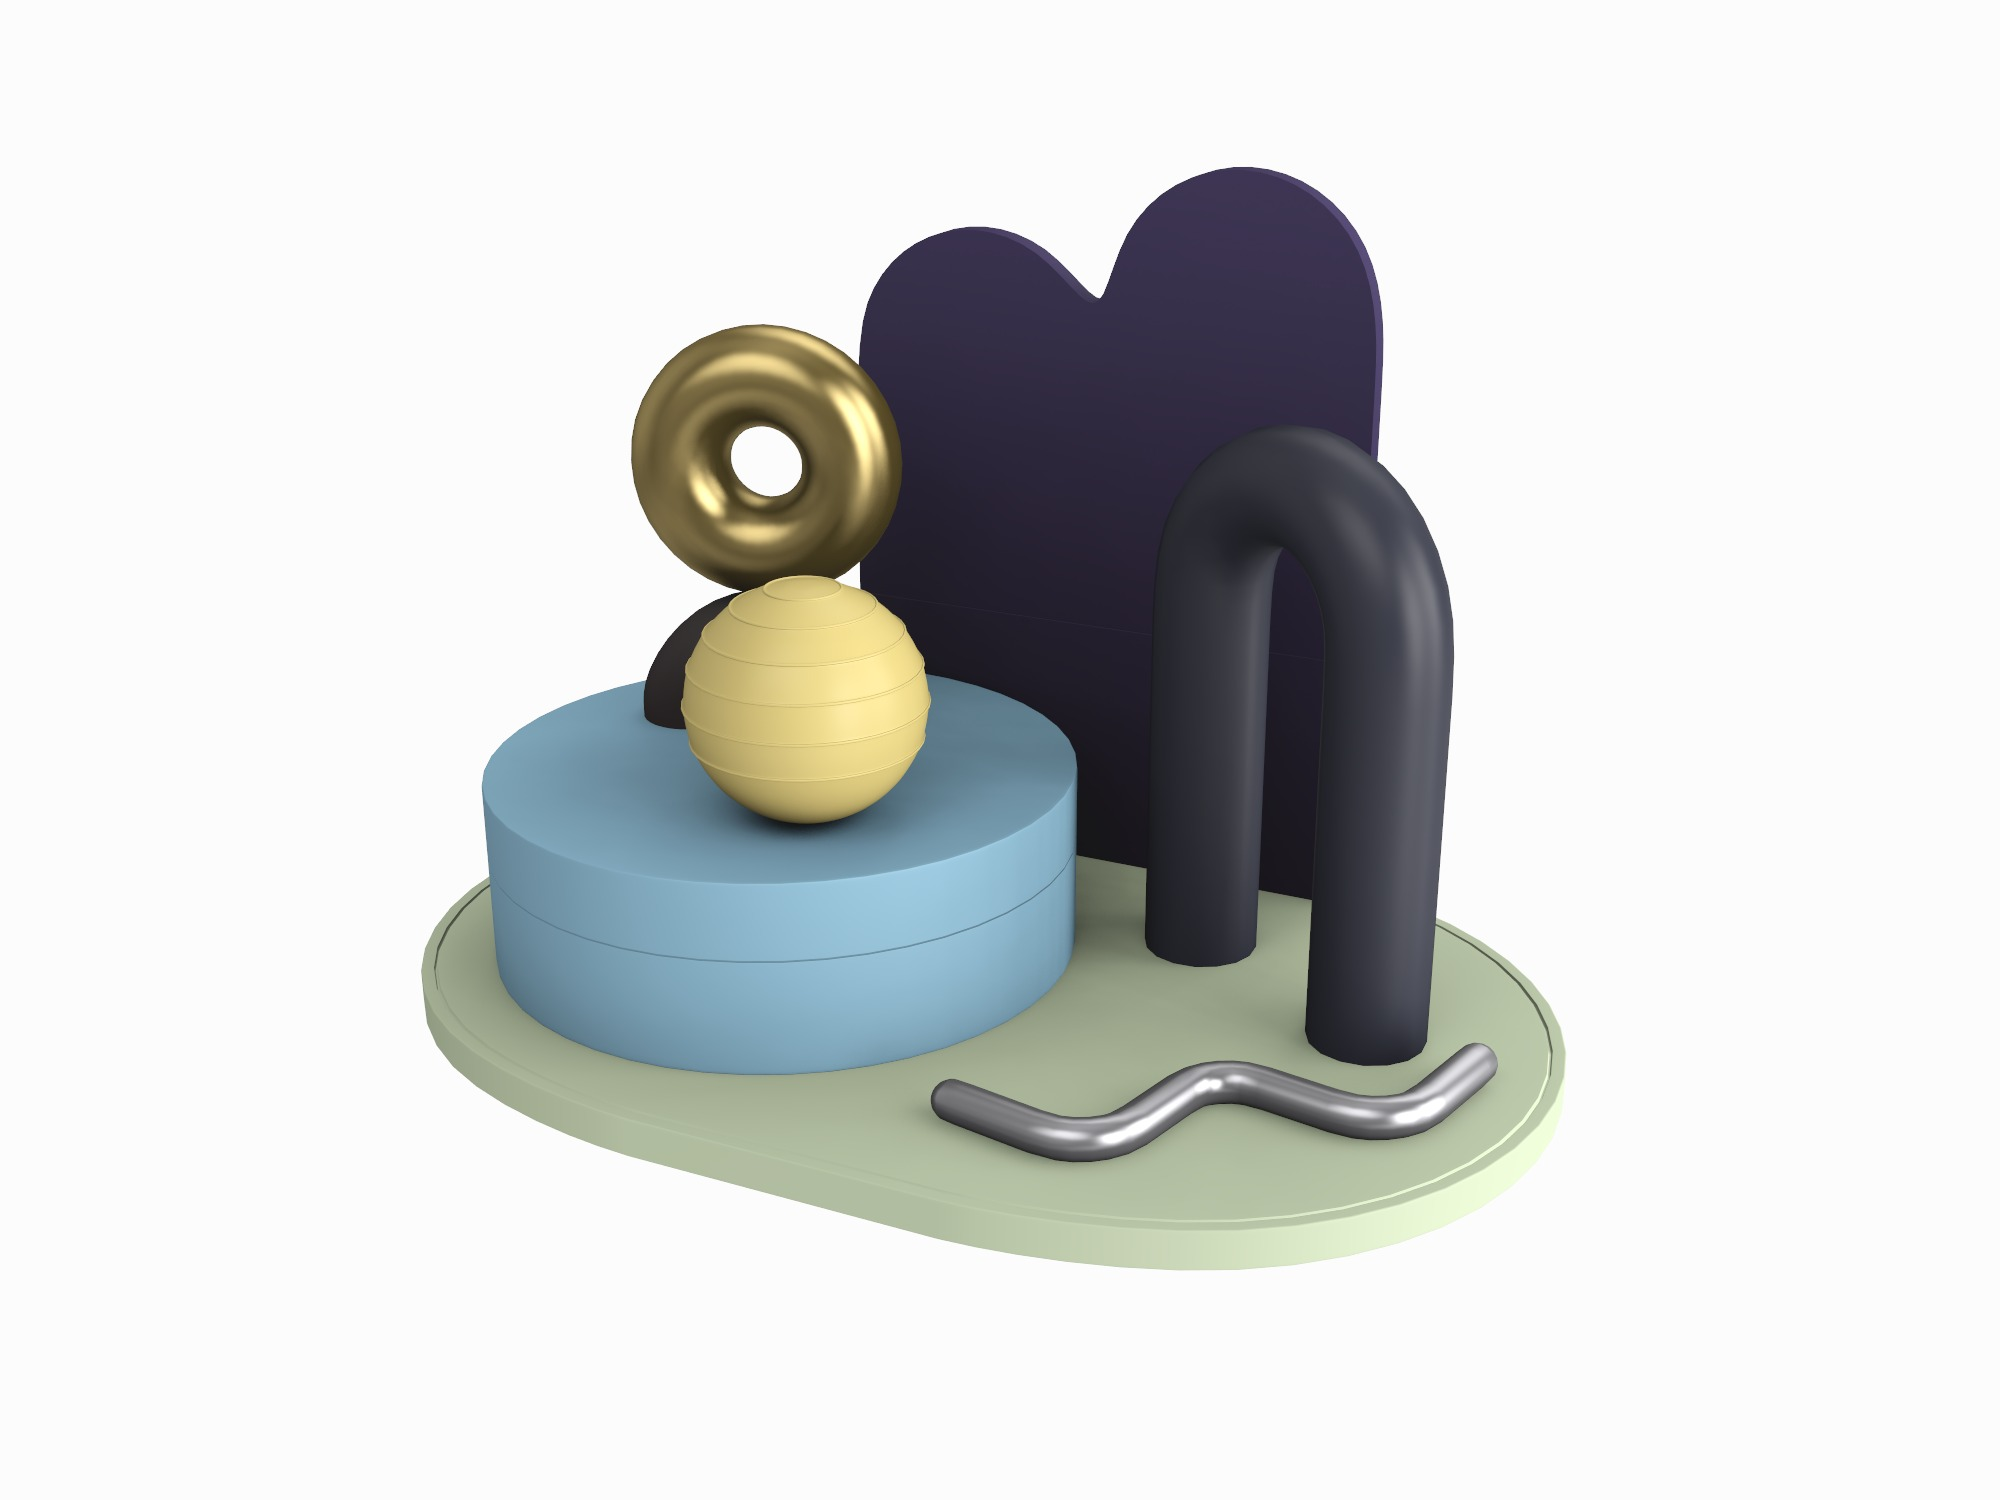 Onboarding model (copy) - 3D design by onboarding on Jan 16, 2019